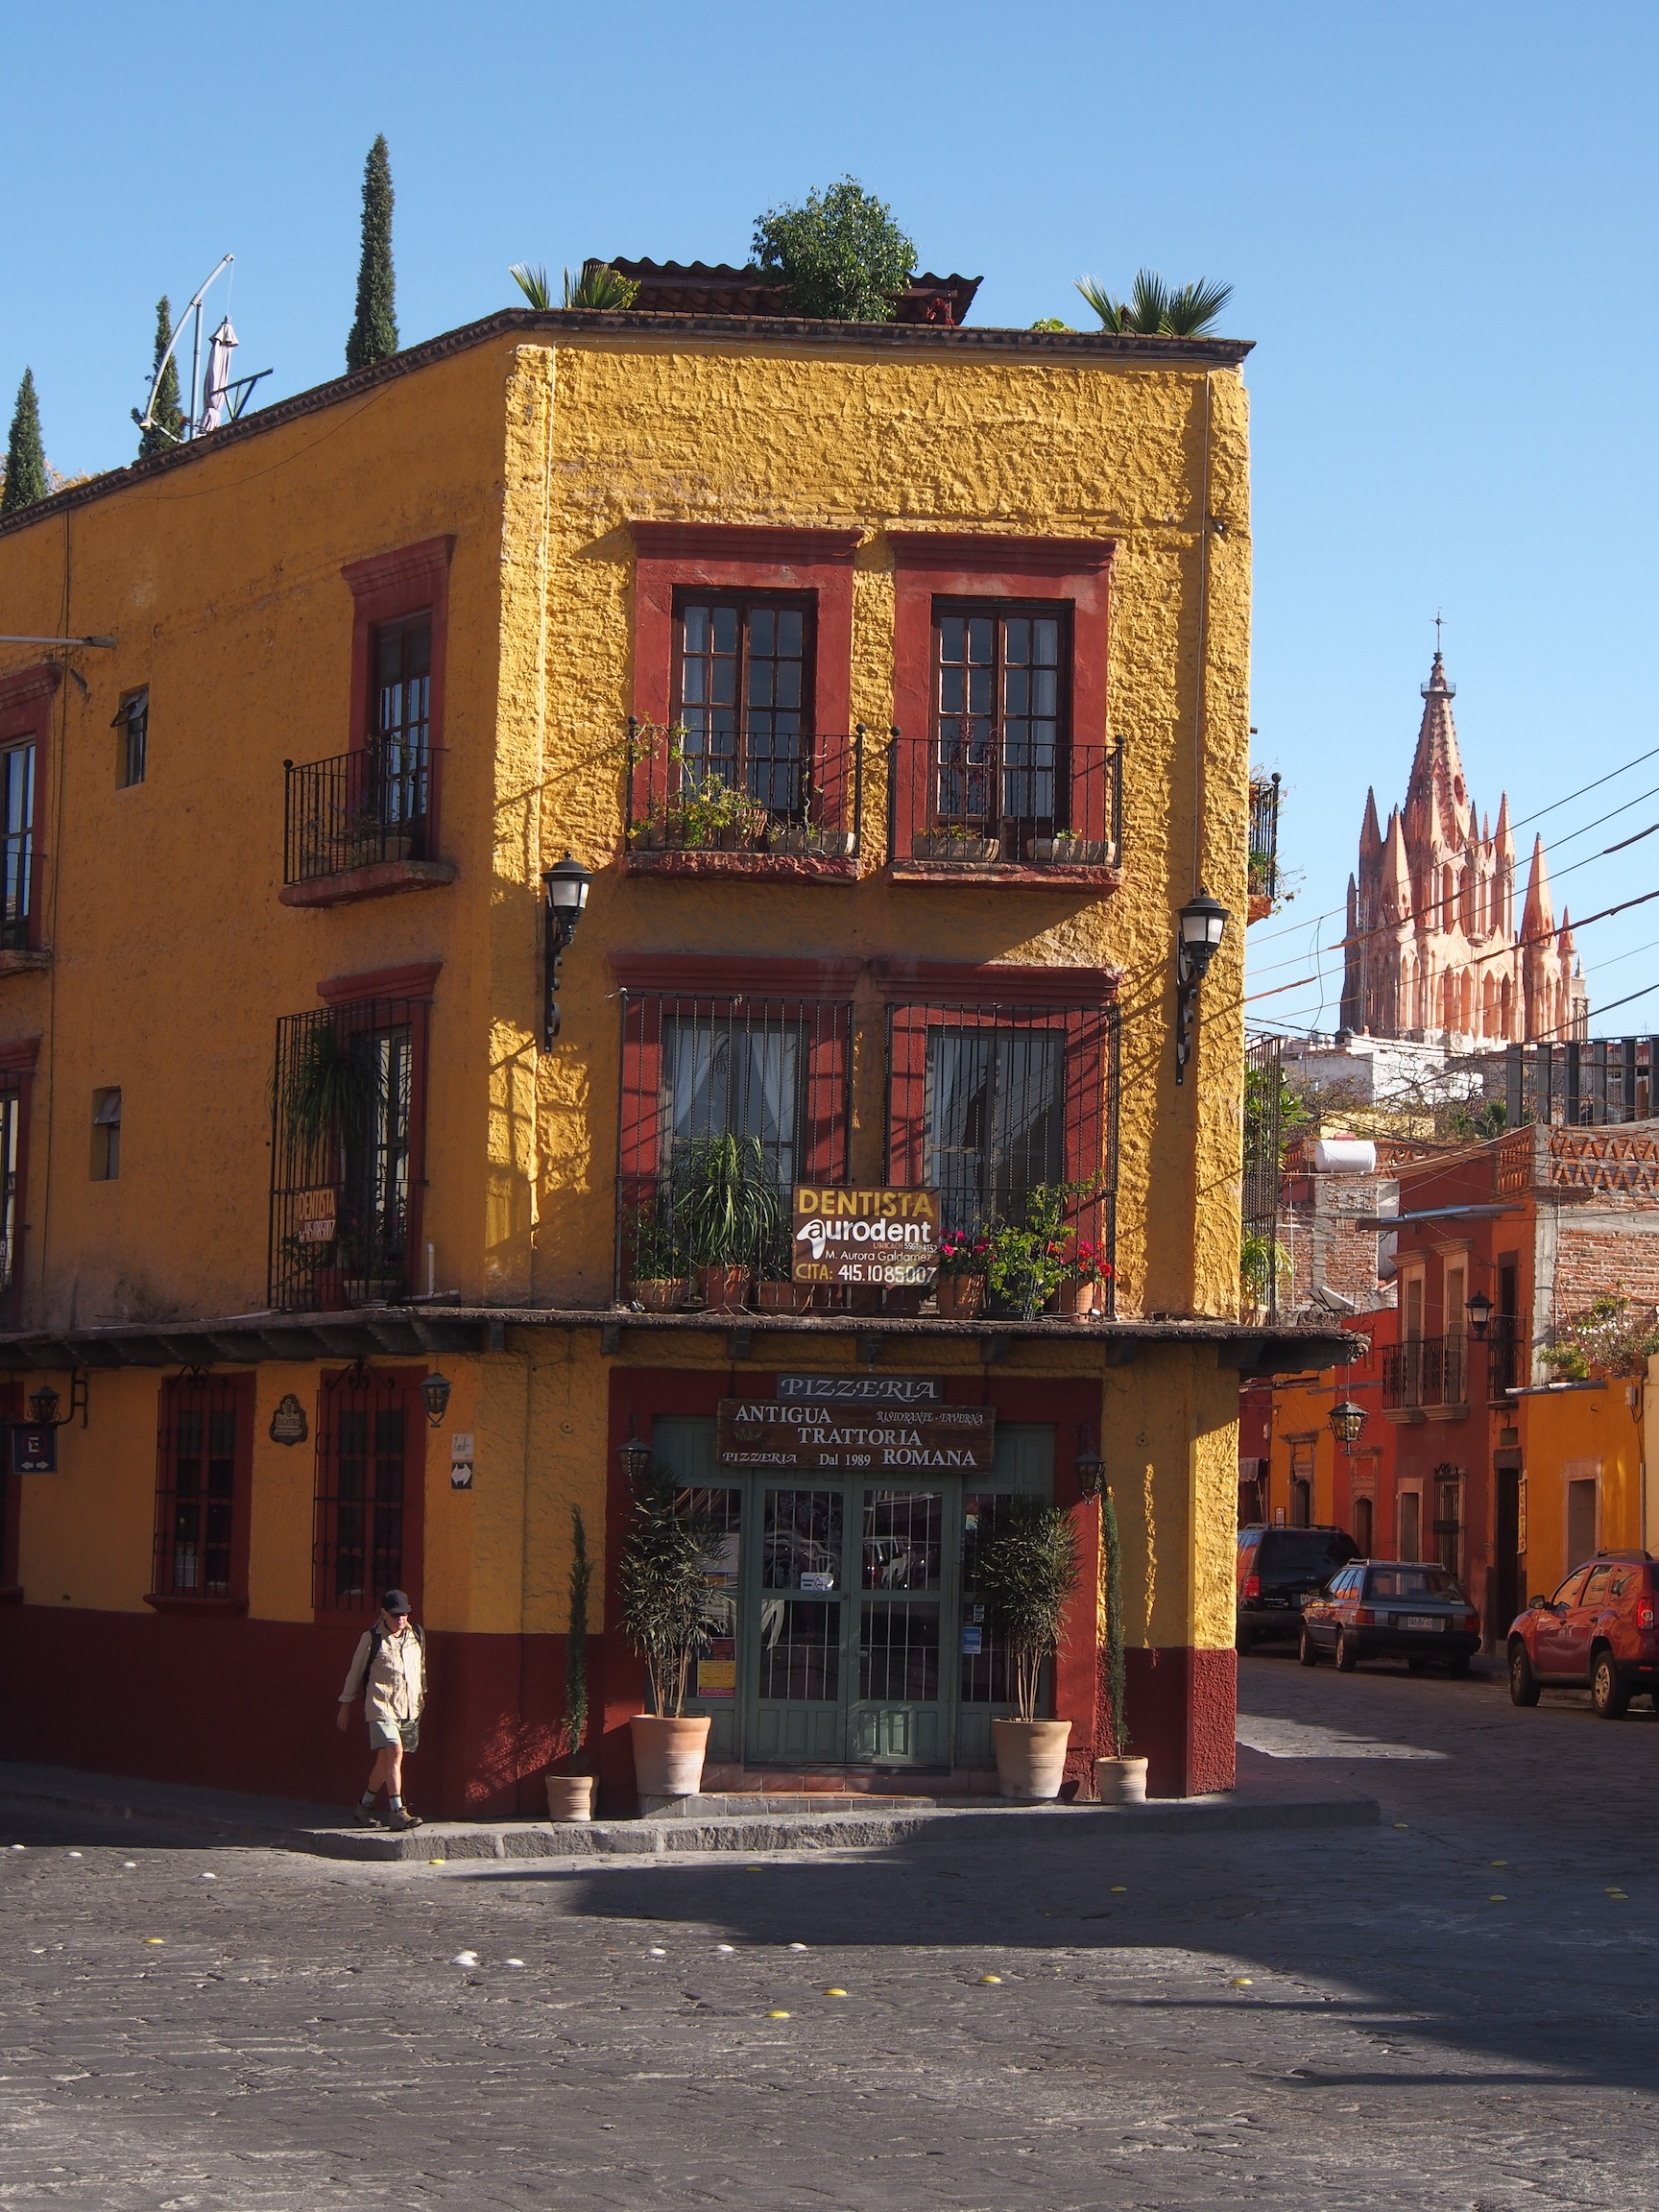 Colourful street corner with Parroquia in background